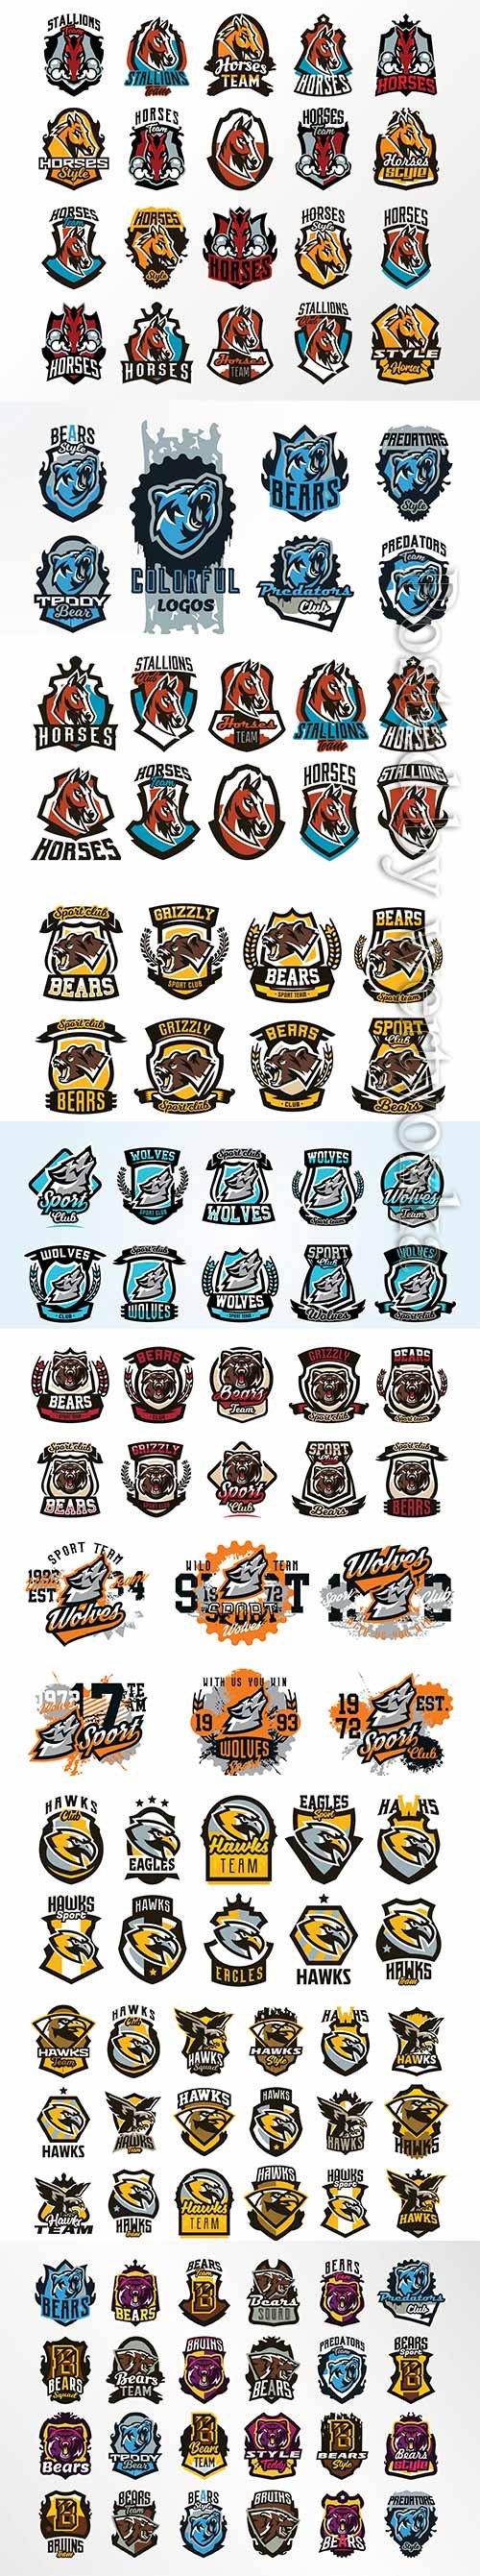 Animals collection of emblems, badges, stickers, logos